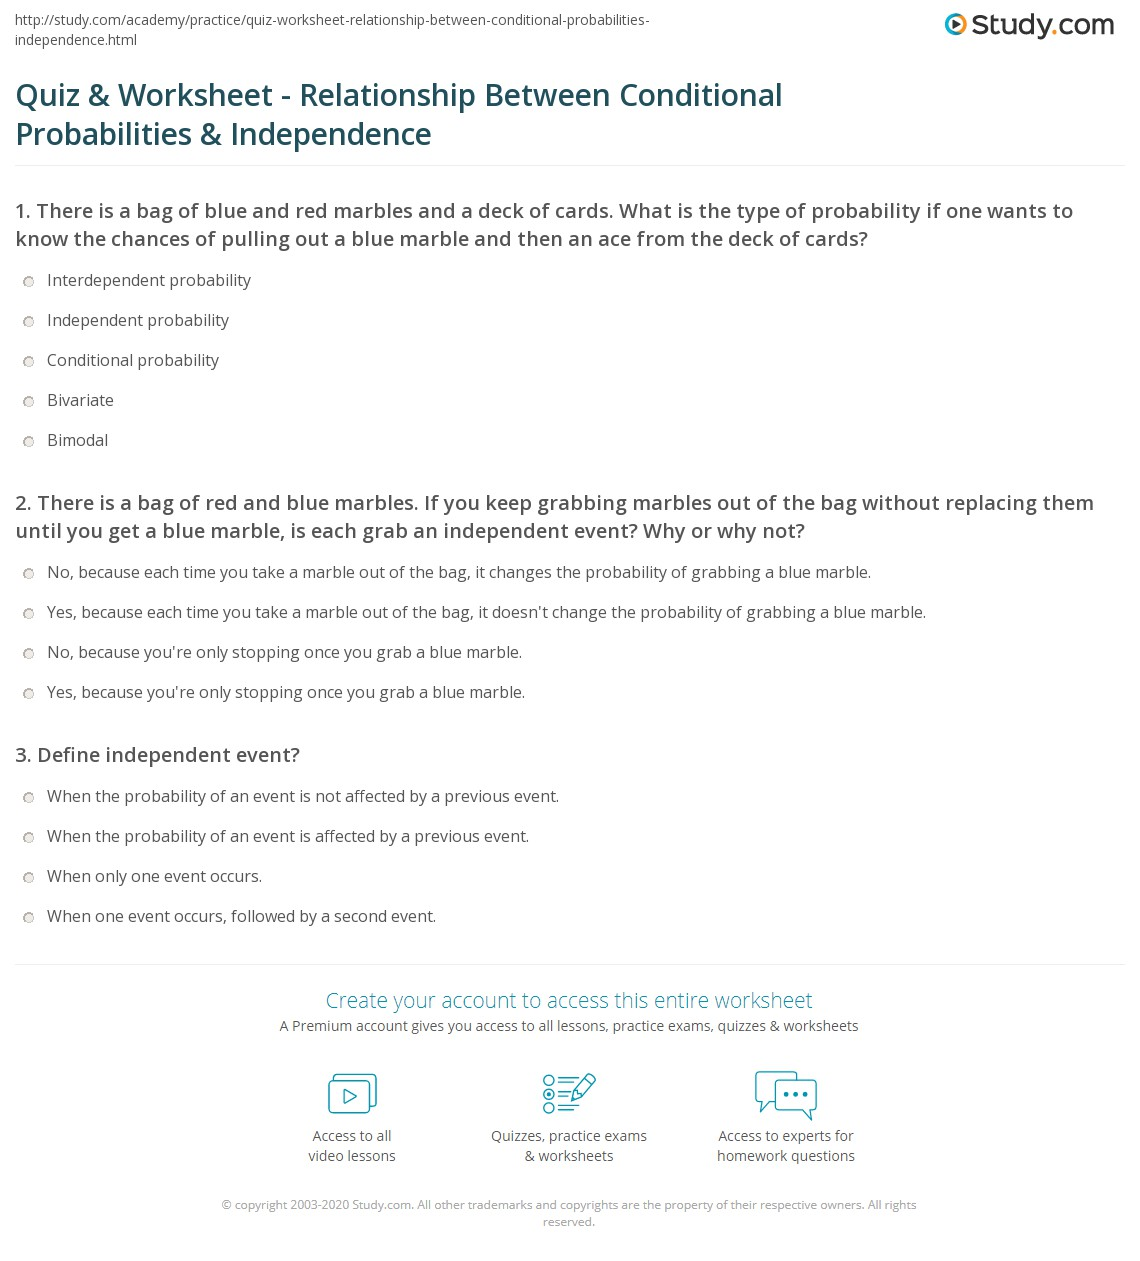 Quiz & Worksheet - Relationship Between Conditional Probabilities ...